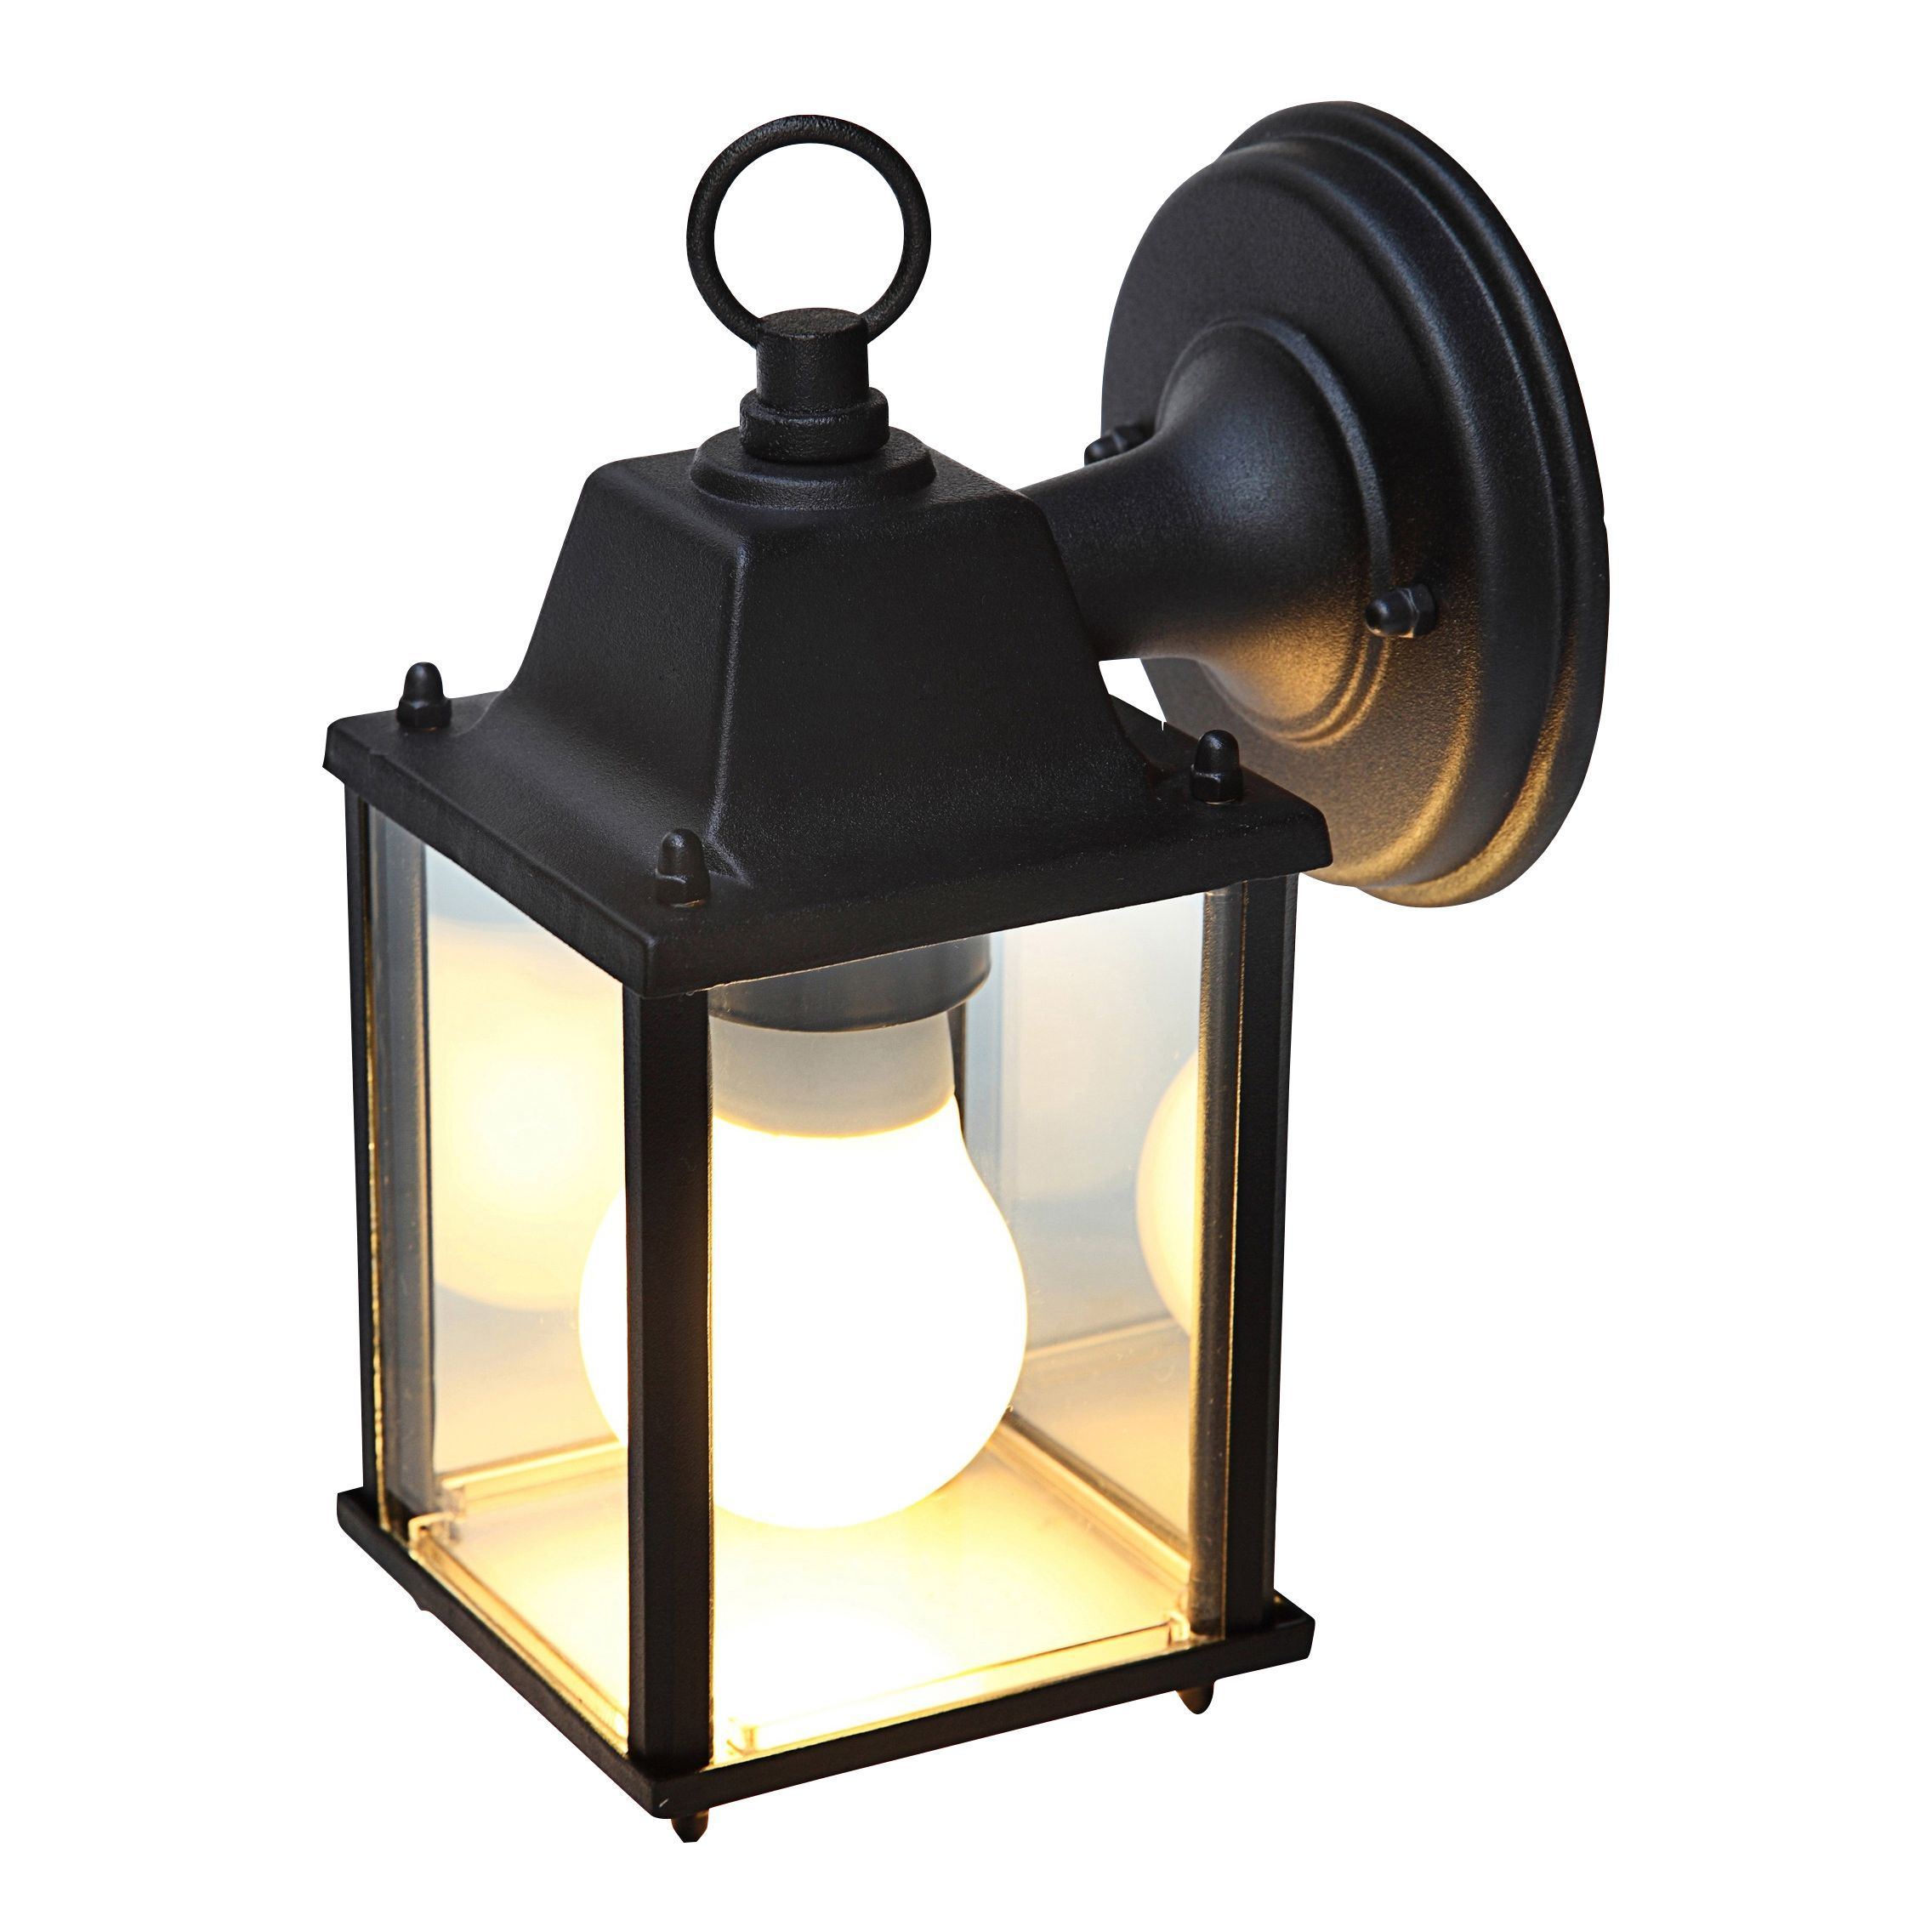 Blooma sollies black mains powered external wall light lights blooma sollies external wall light departments diy at bq aloadofball